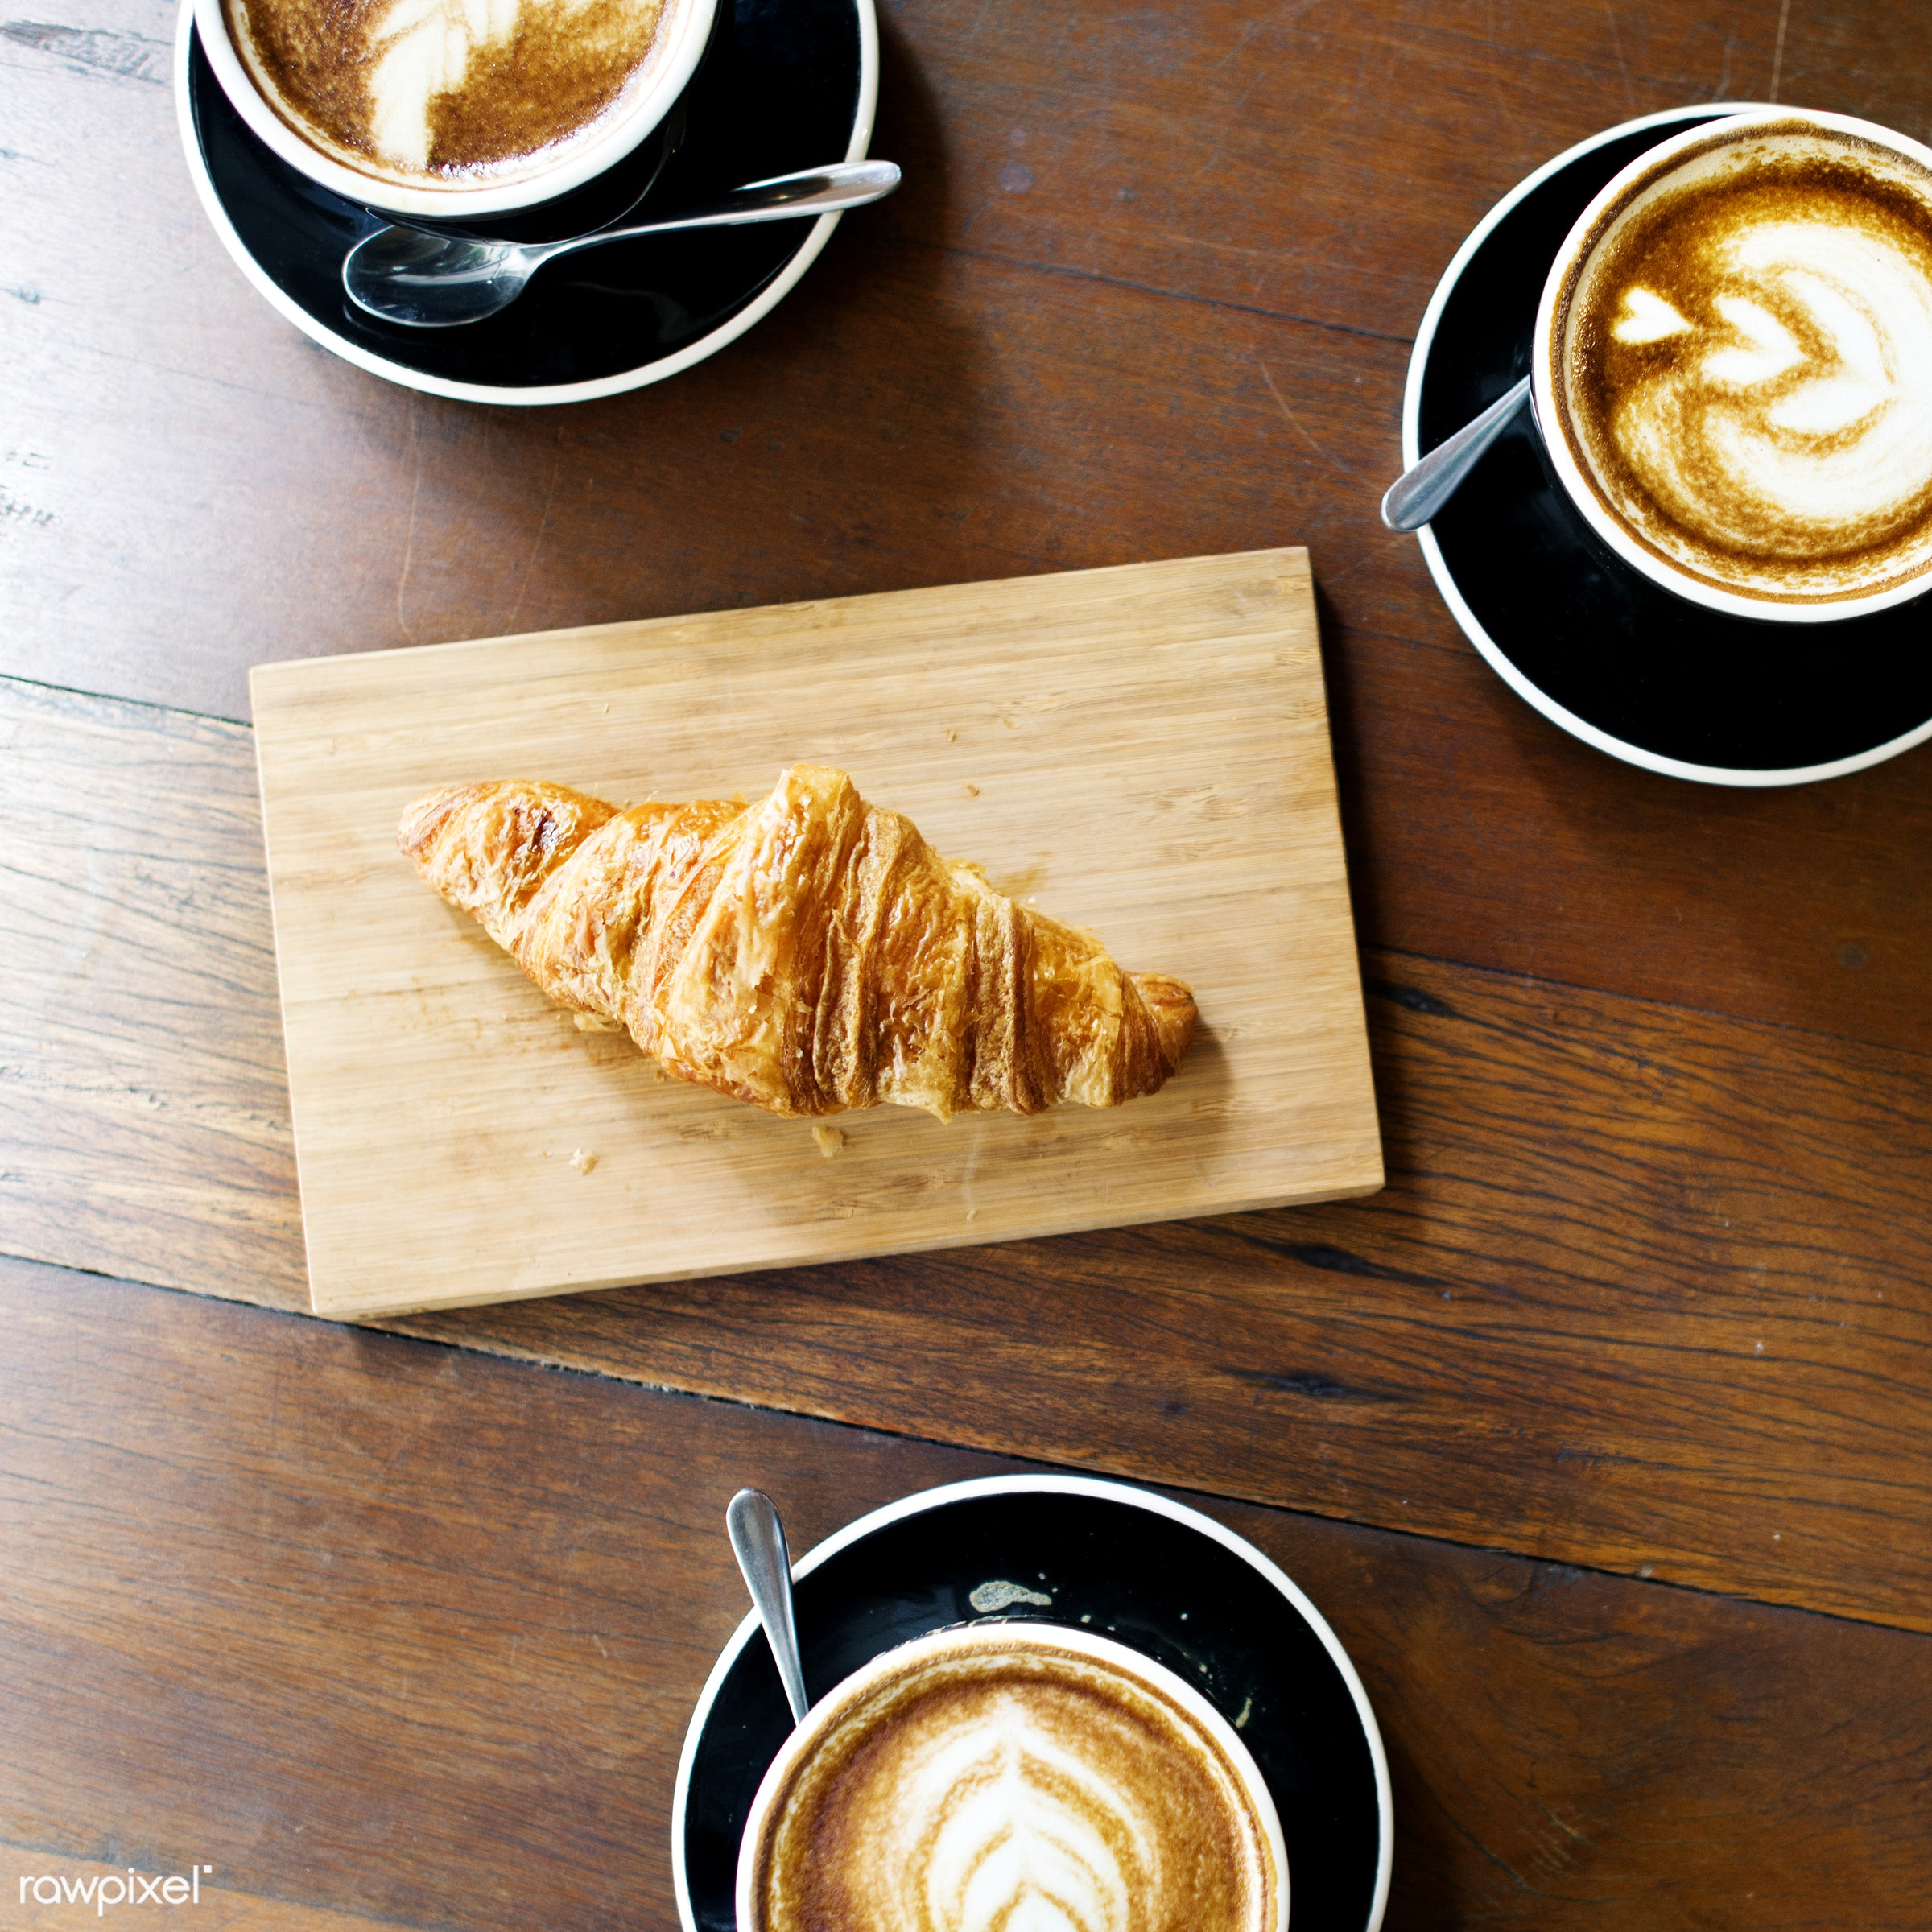 cup, shop, nobody, flatlay, coffee, baked, croissant, latte art, bakery, cafe, latte, aerial view, pastry, wooden table,...